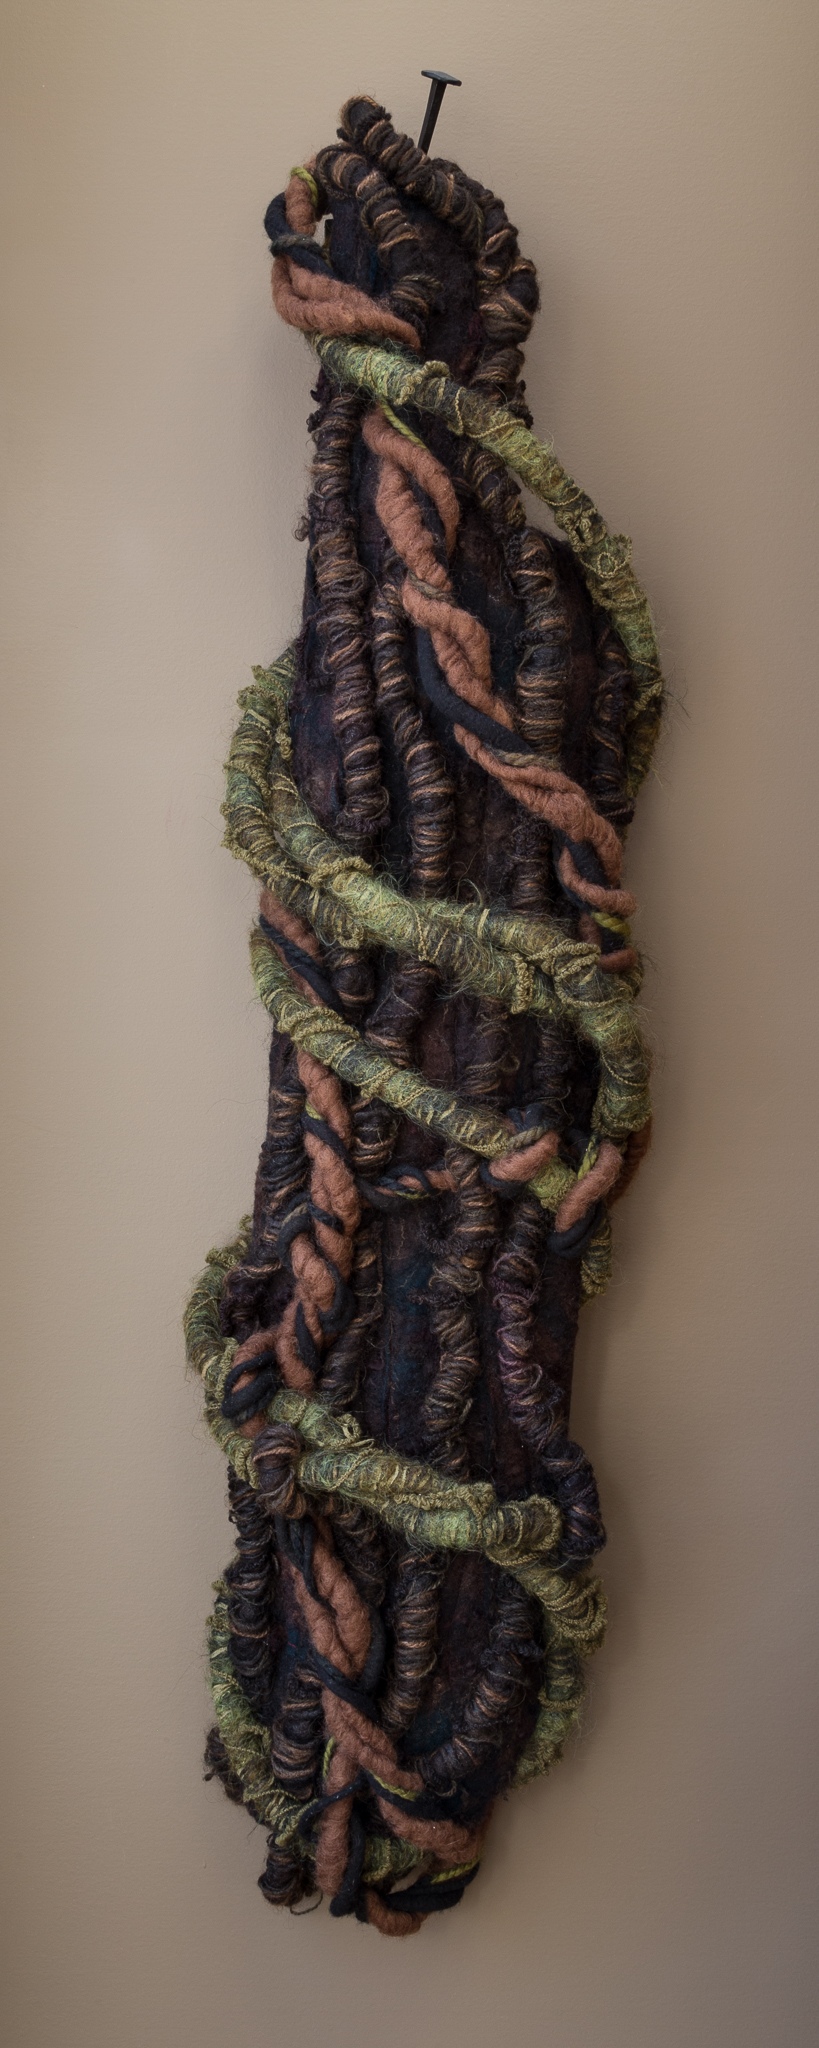 strangled   handmade felt, mixed media  48 x 13 x 5